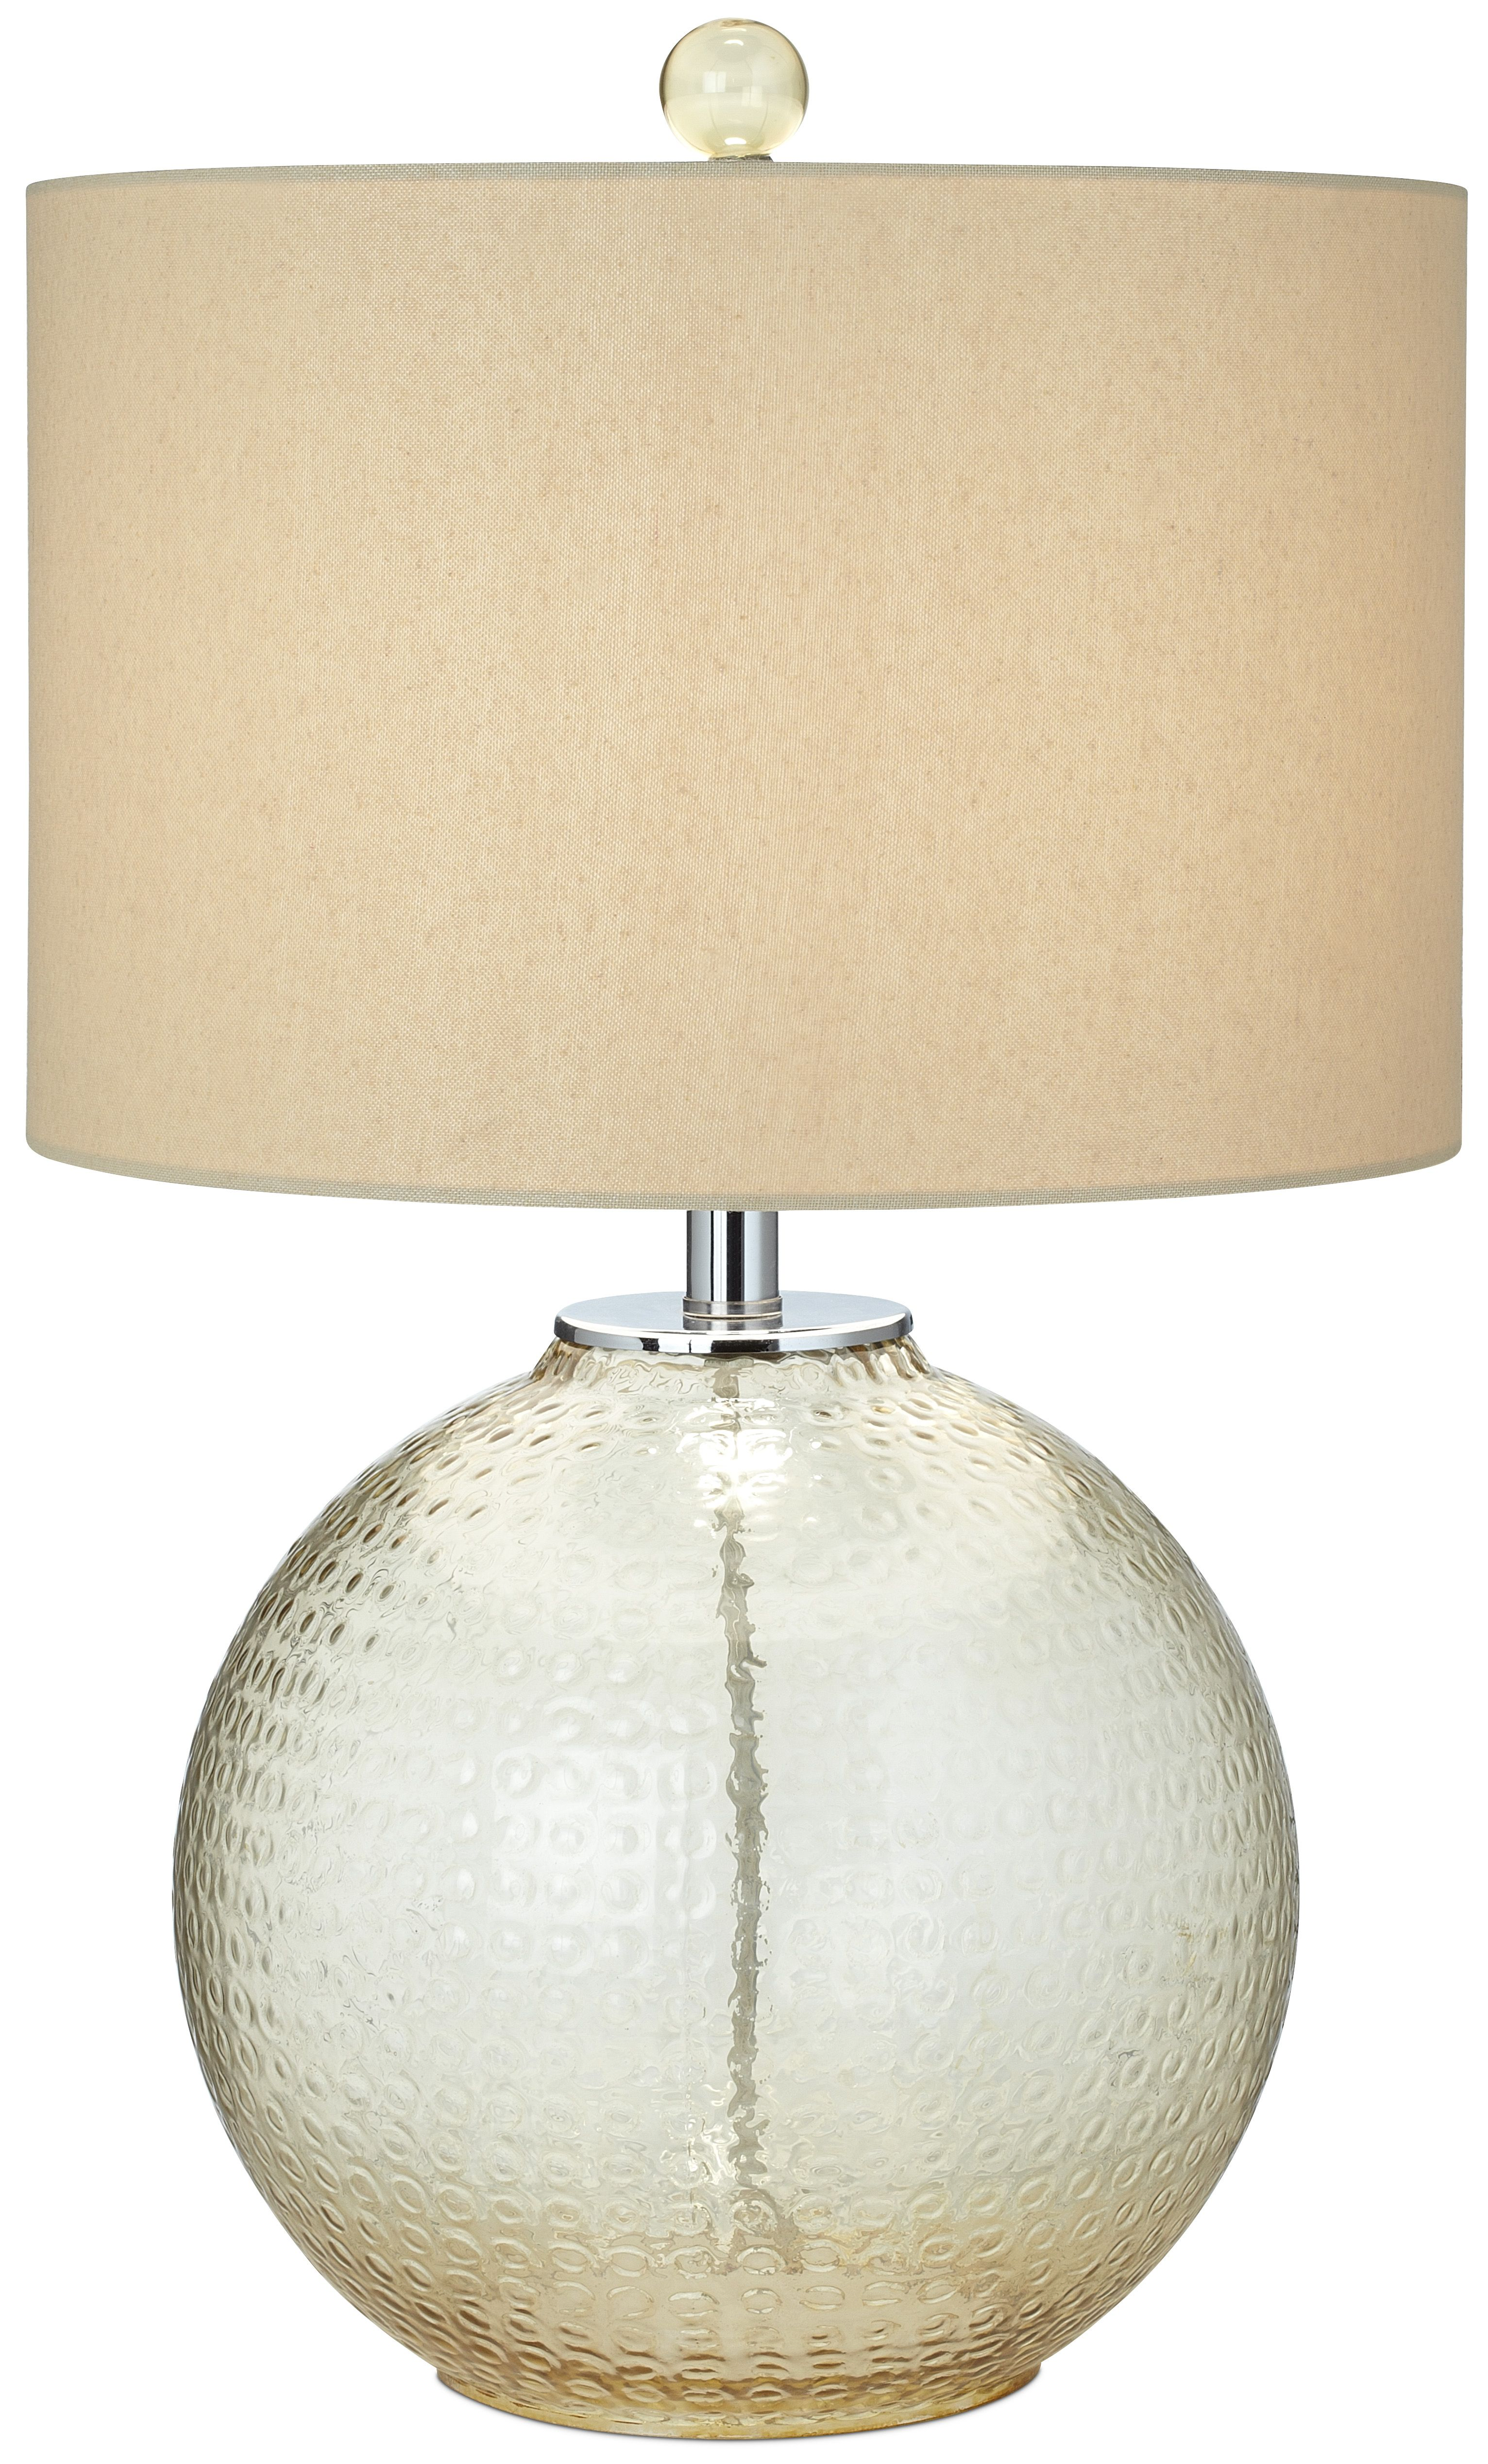 The simple design of the oculus table lamp from pacific coast the simple design of the oculus table lamp from pacific coast lighting features a round glass aloadofball Image collections